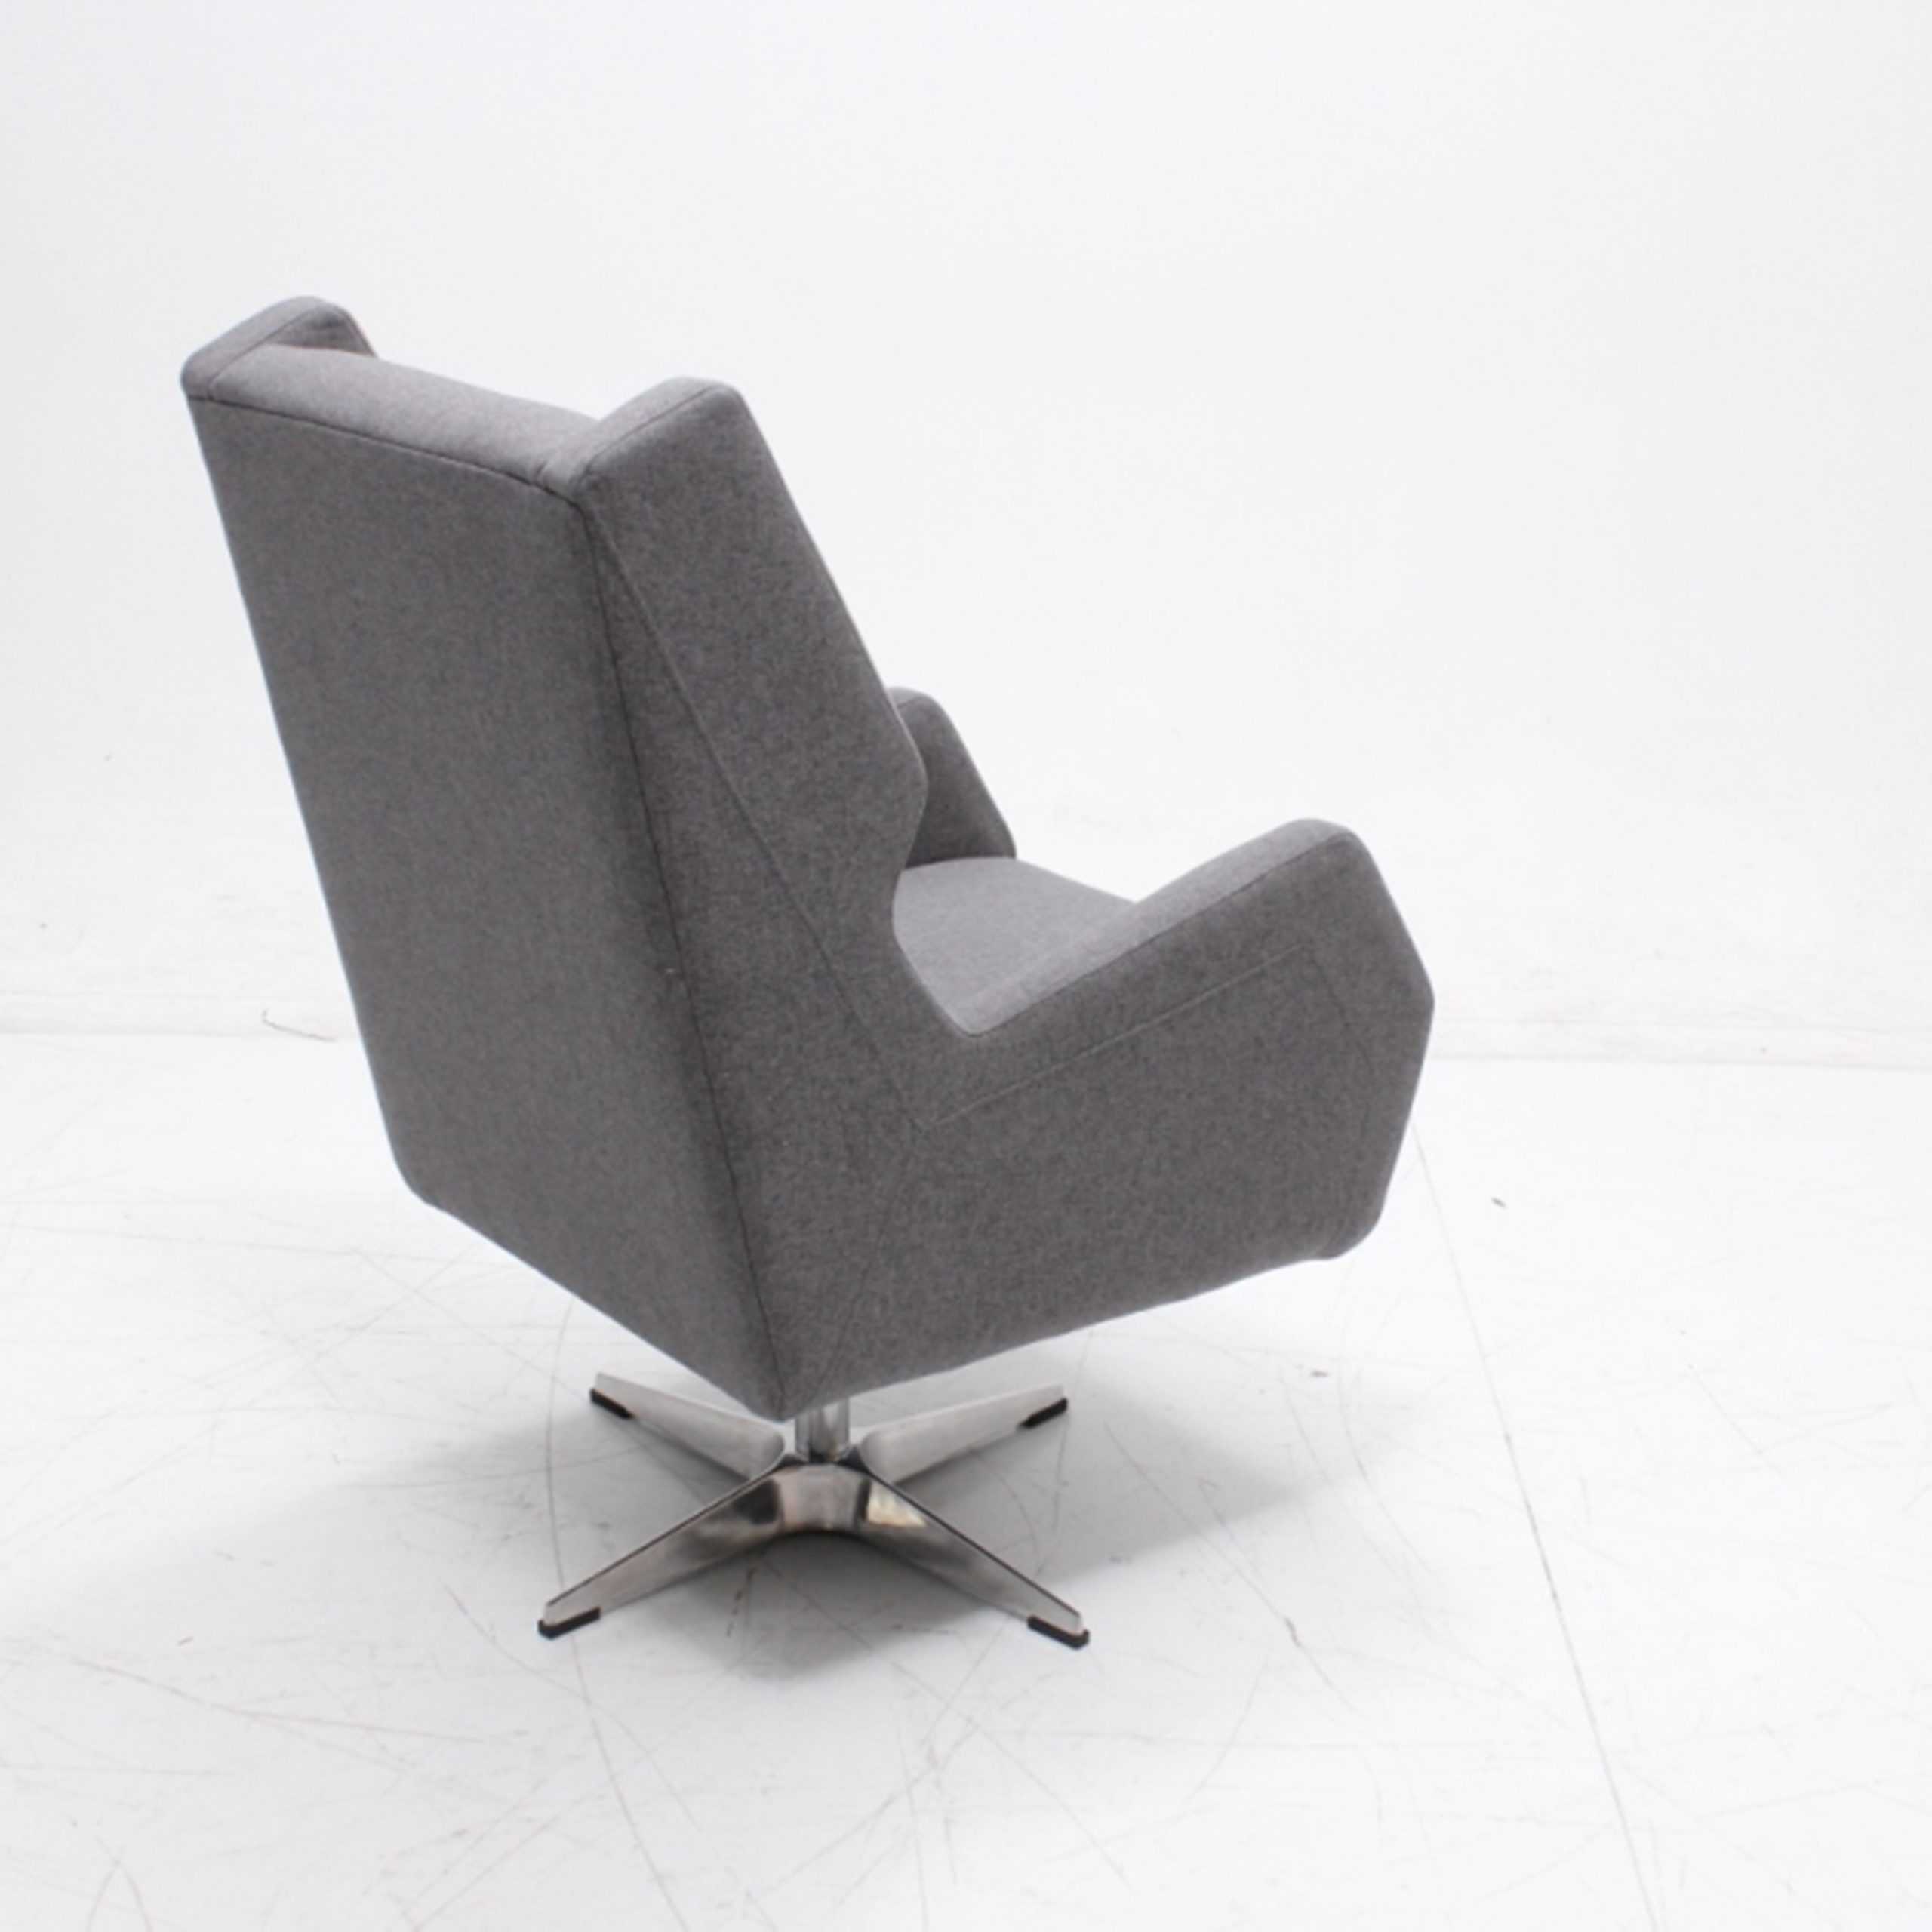 High Back Swivel Accent Chair Smooth Fluid Motion With Armrest Inside Woven High Back Swivel Chairs (Image 9 of 25)